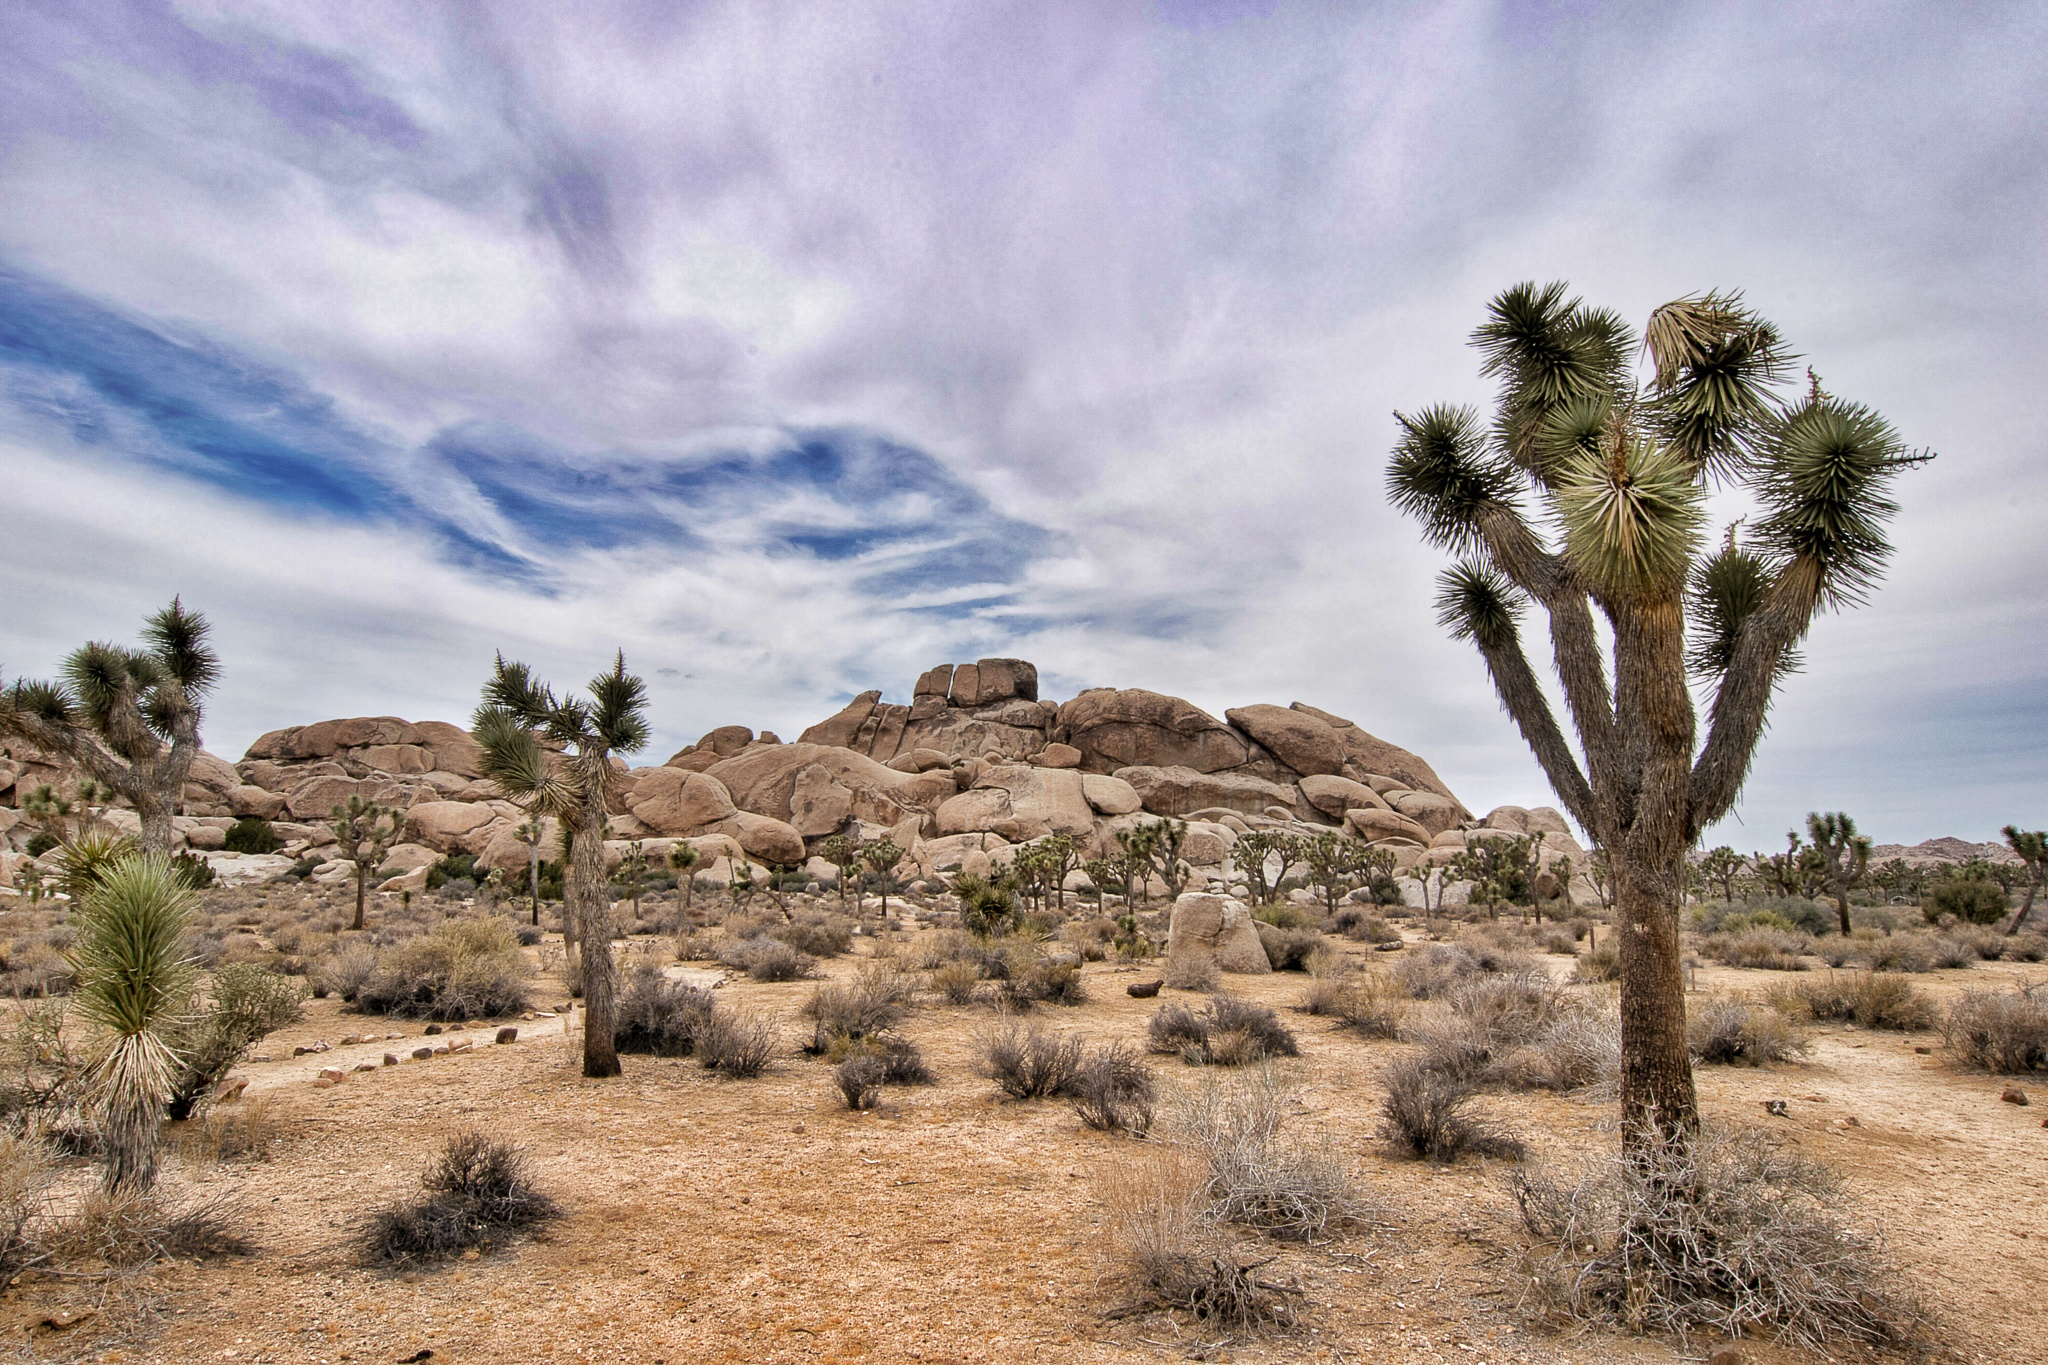 Joshua Tree National Park by Andy Dilling